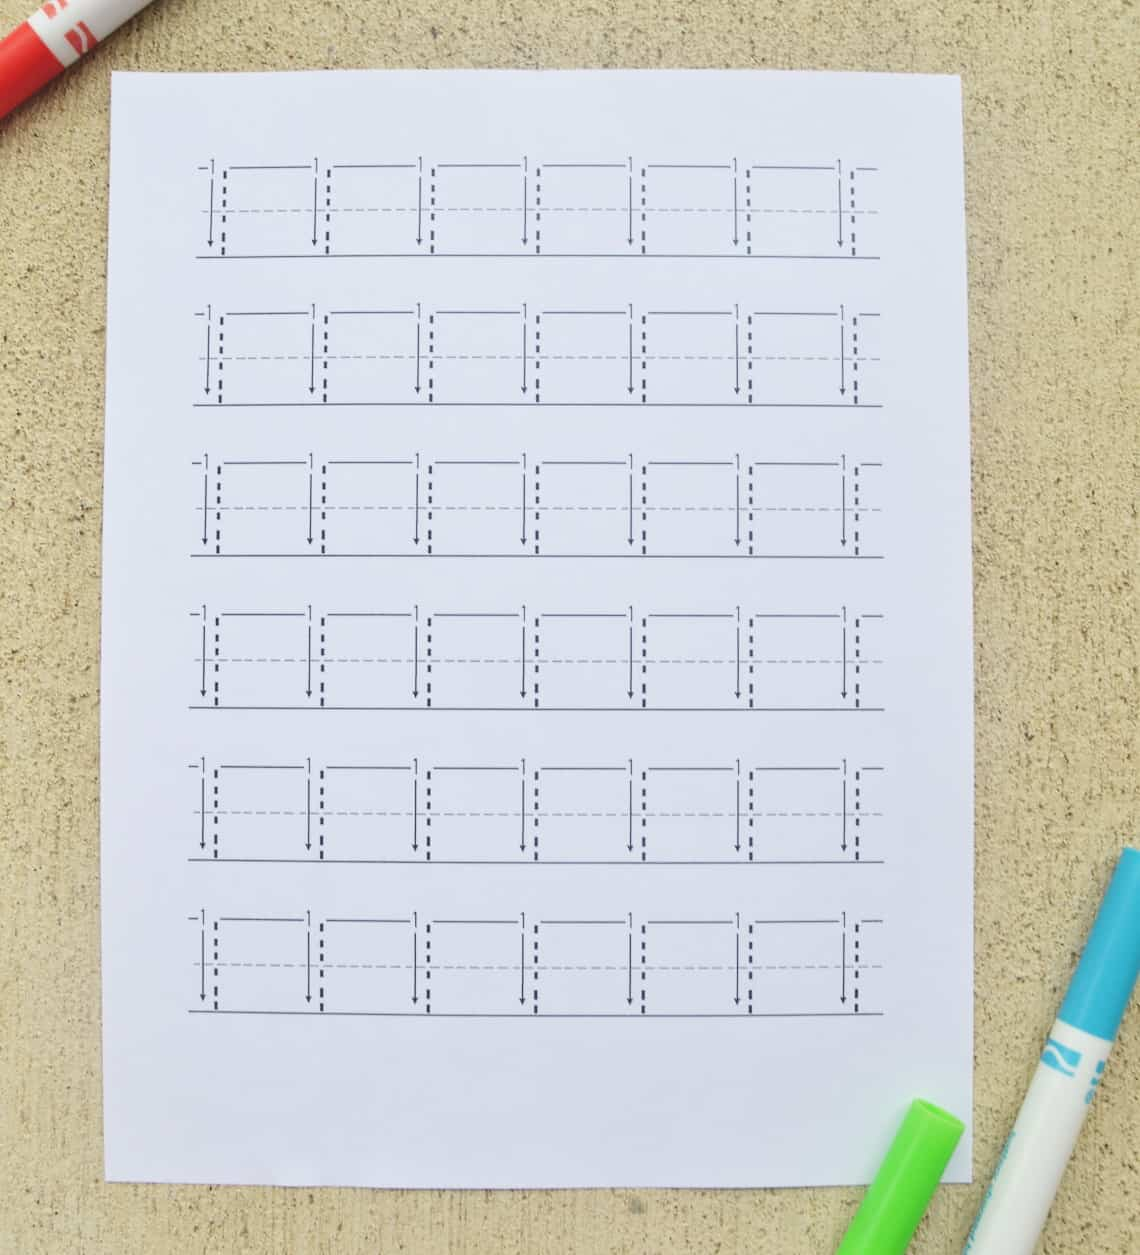 Number Tracing Worksheets 1-10 with arrows